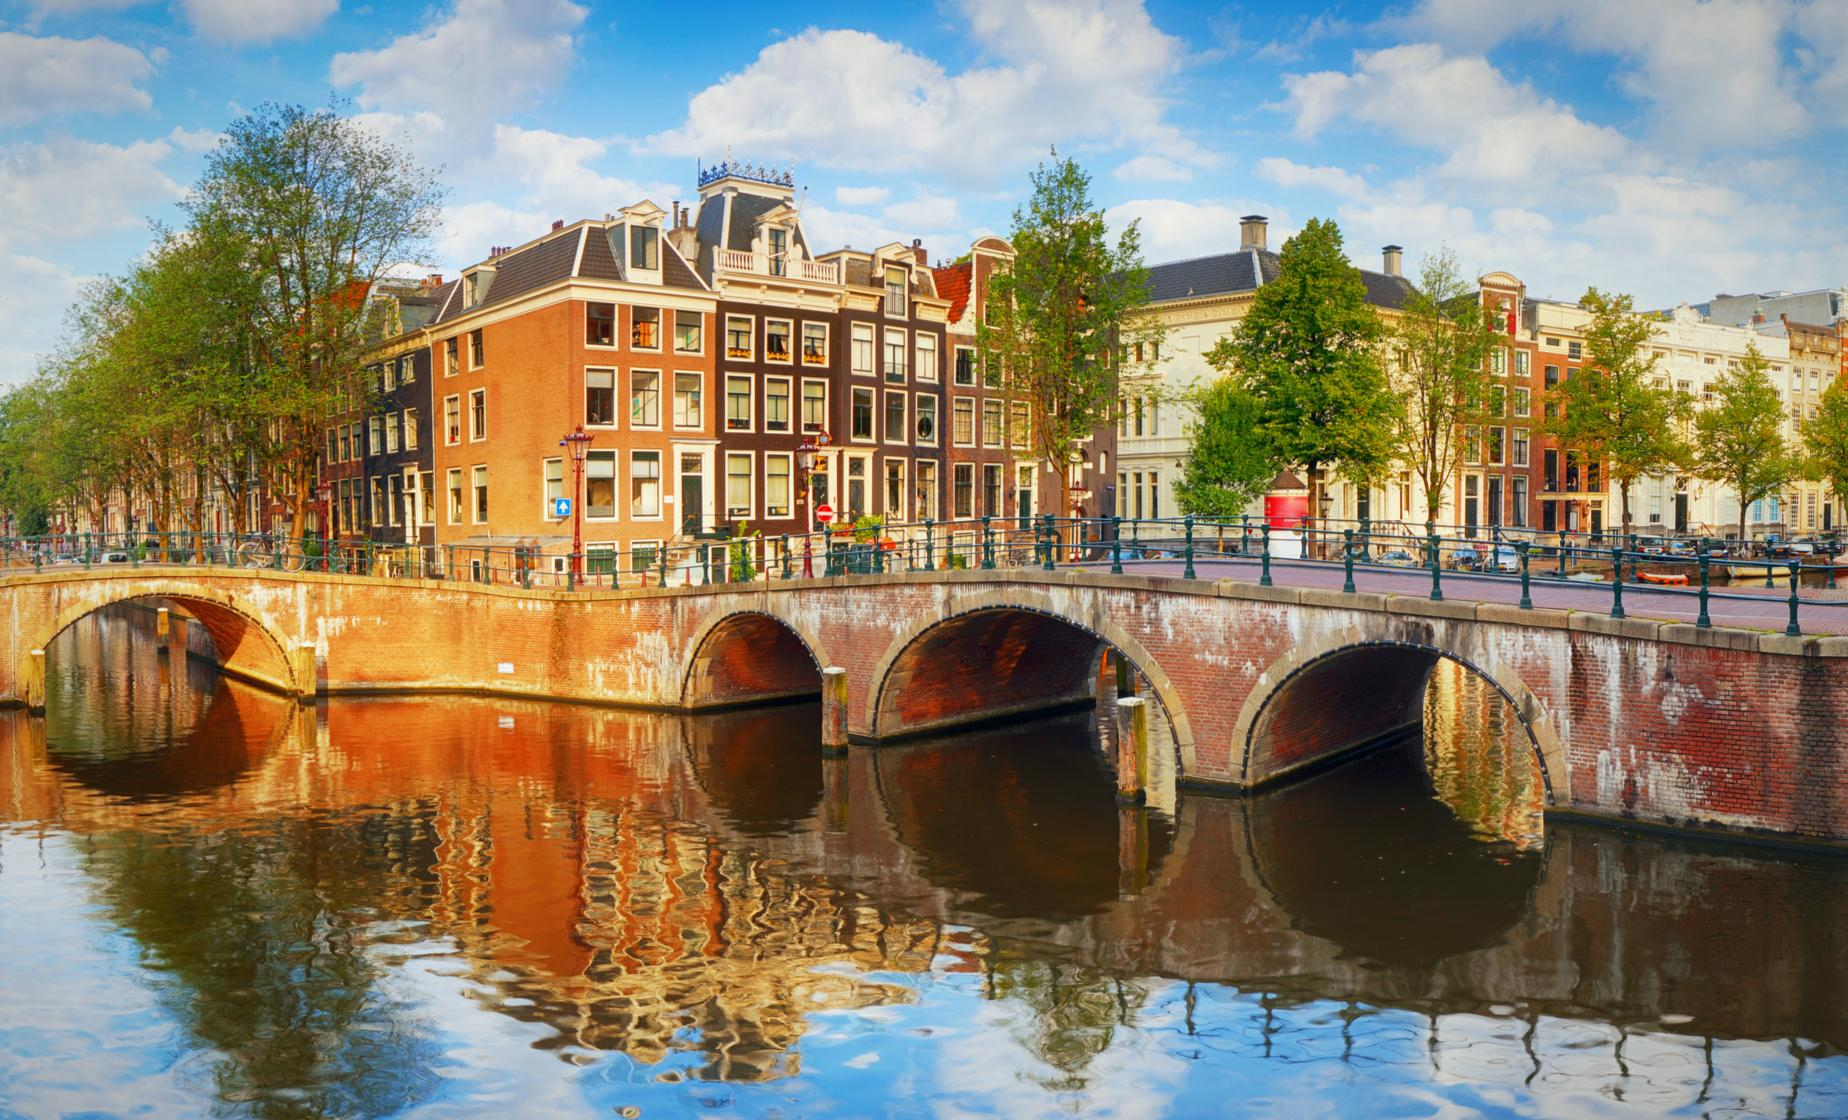 Highlights of Amsterdam with Van Gogh